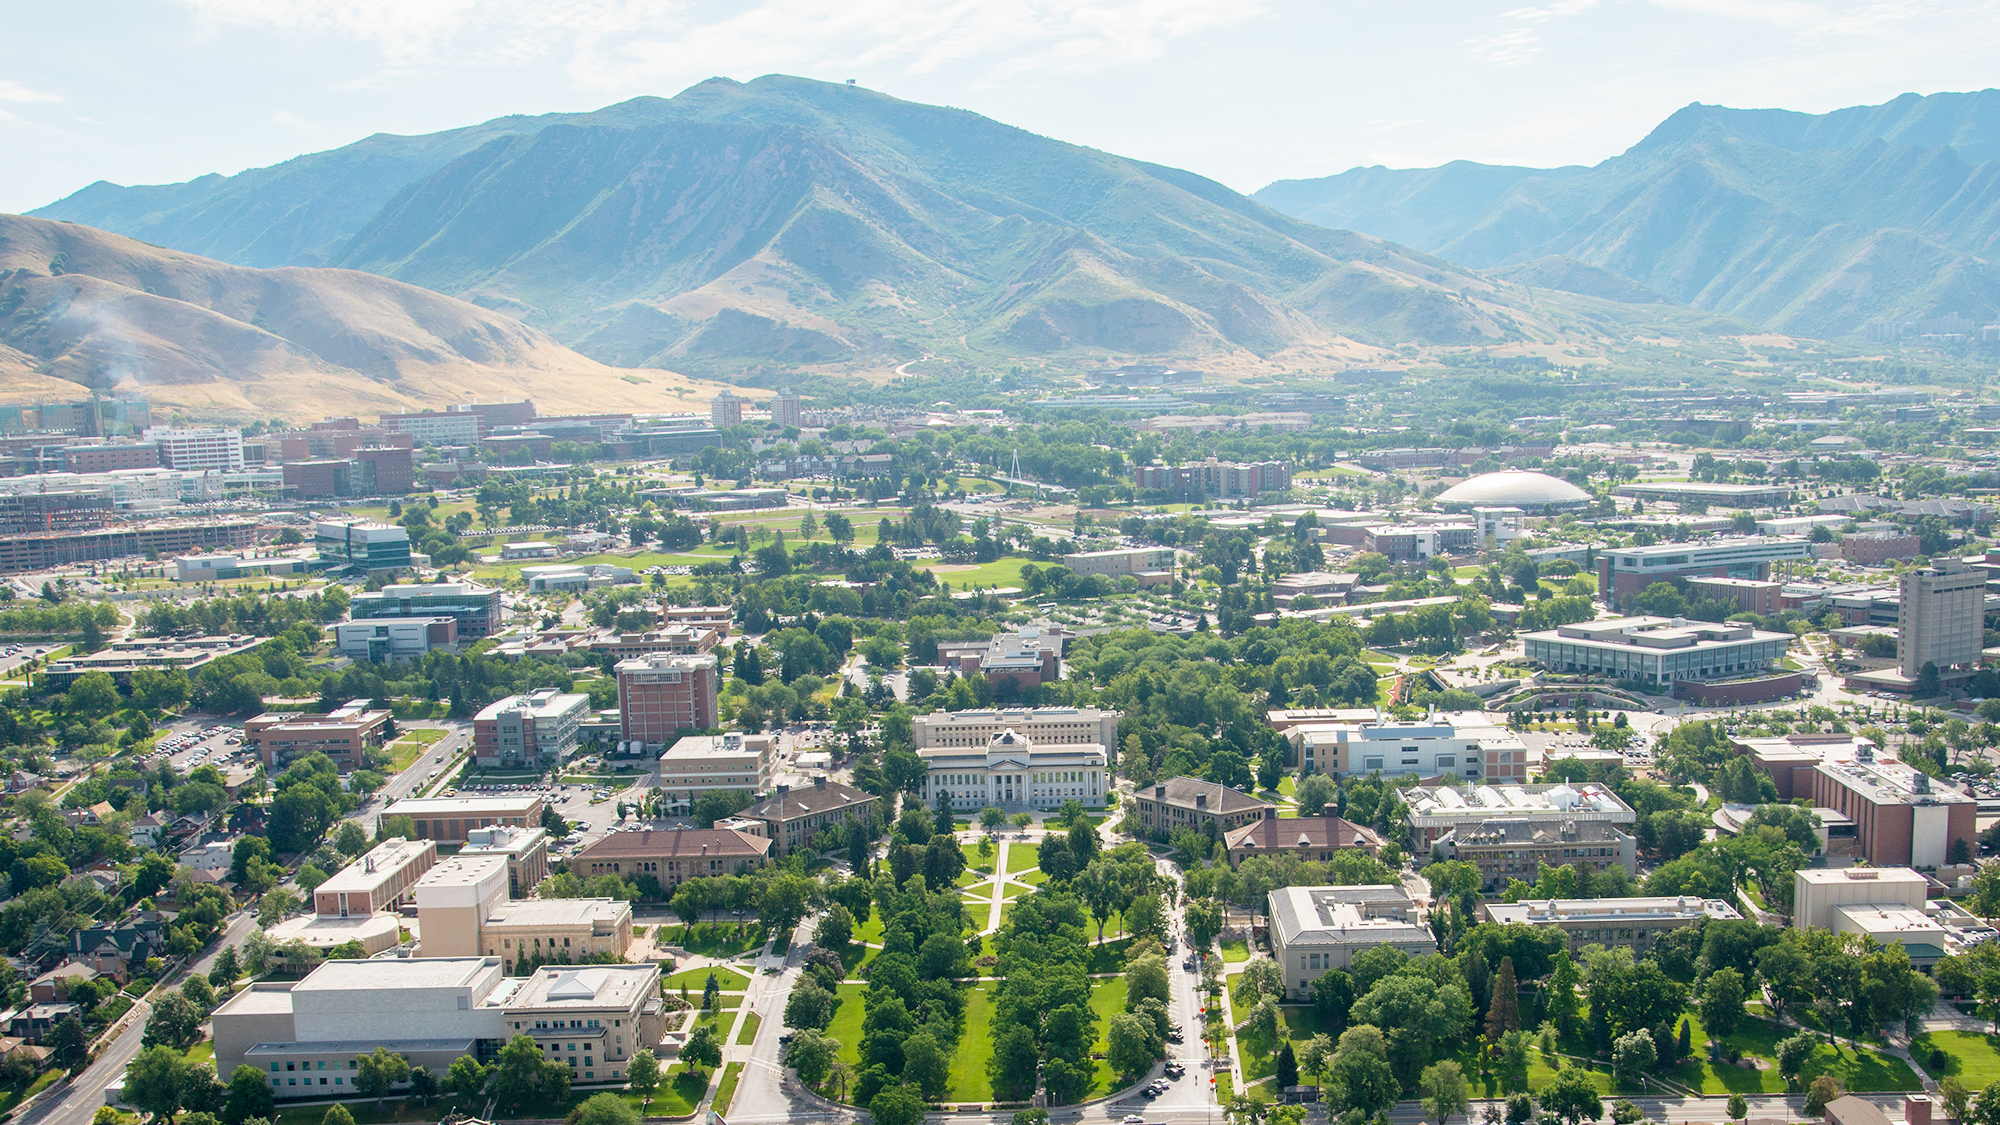 aerial view of the University of Utah campus